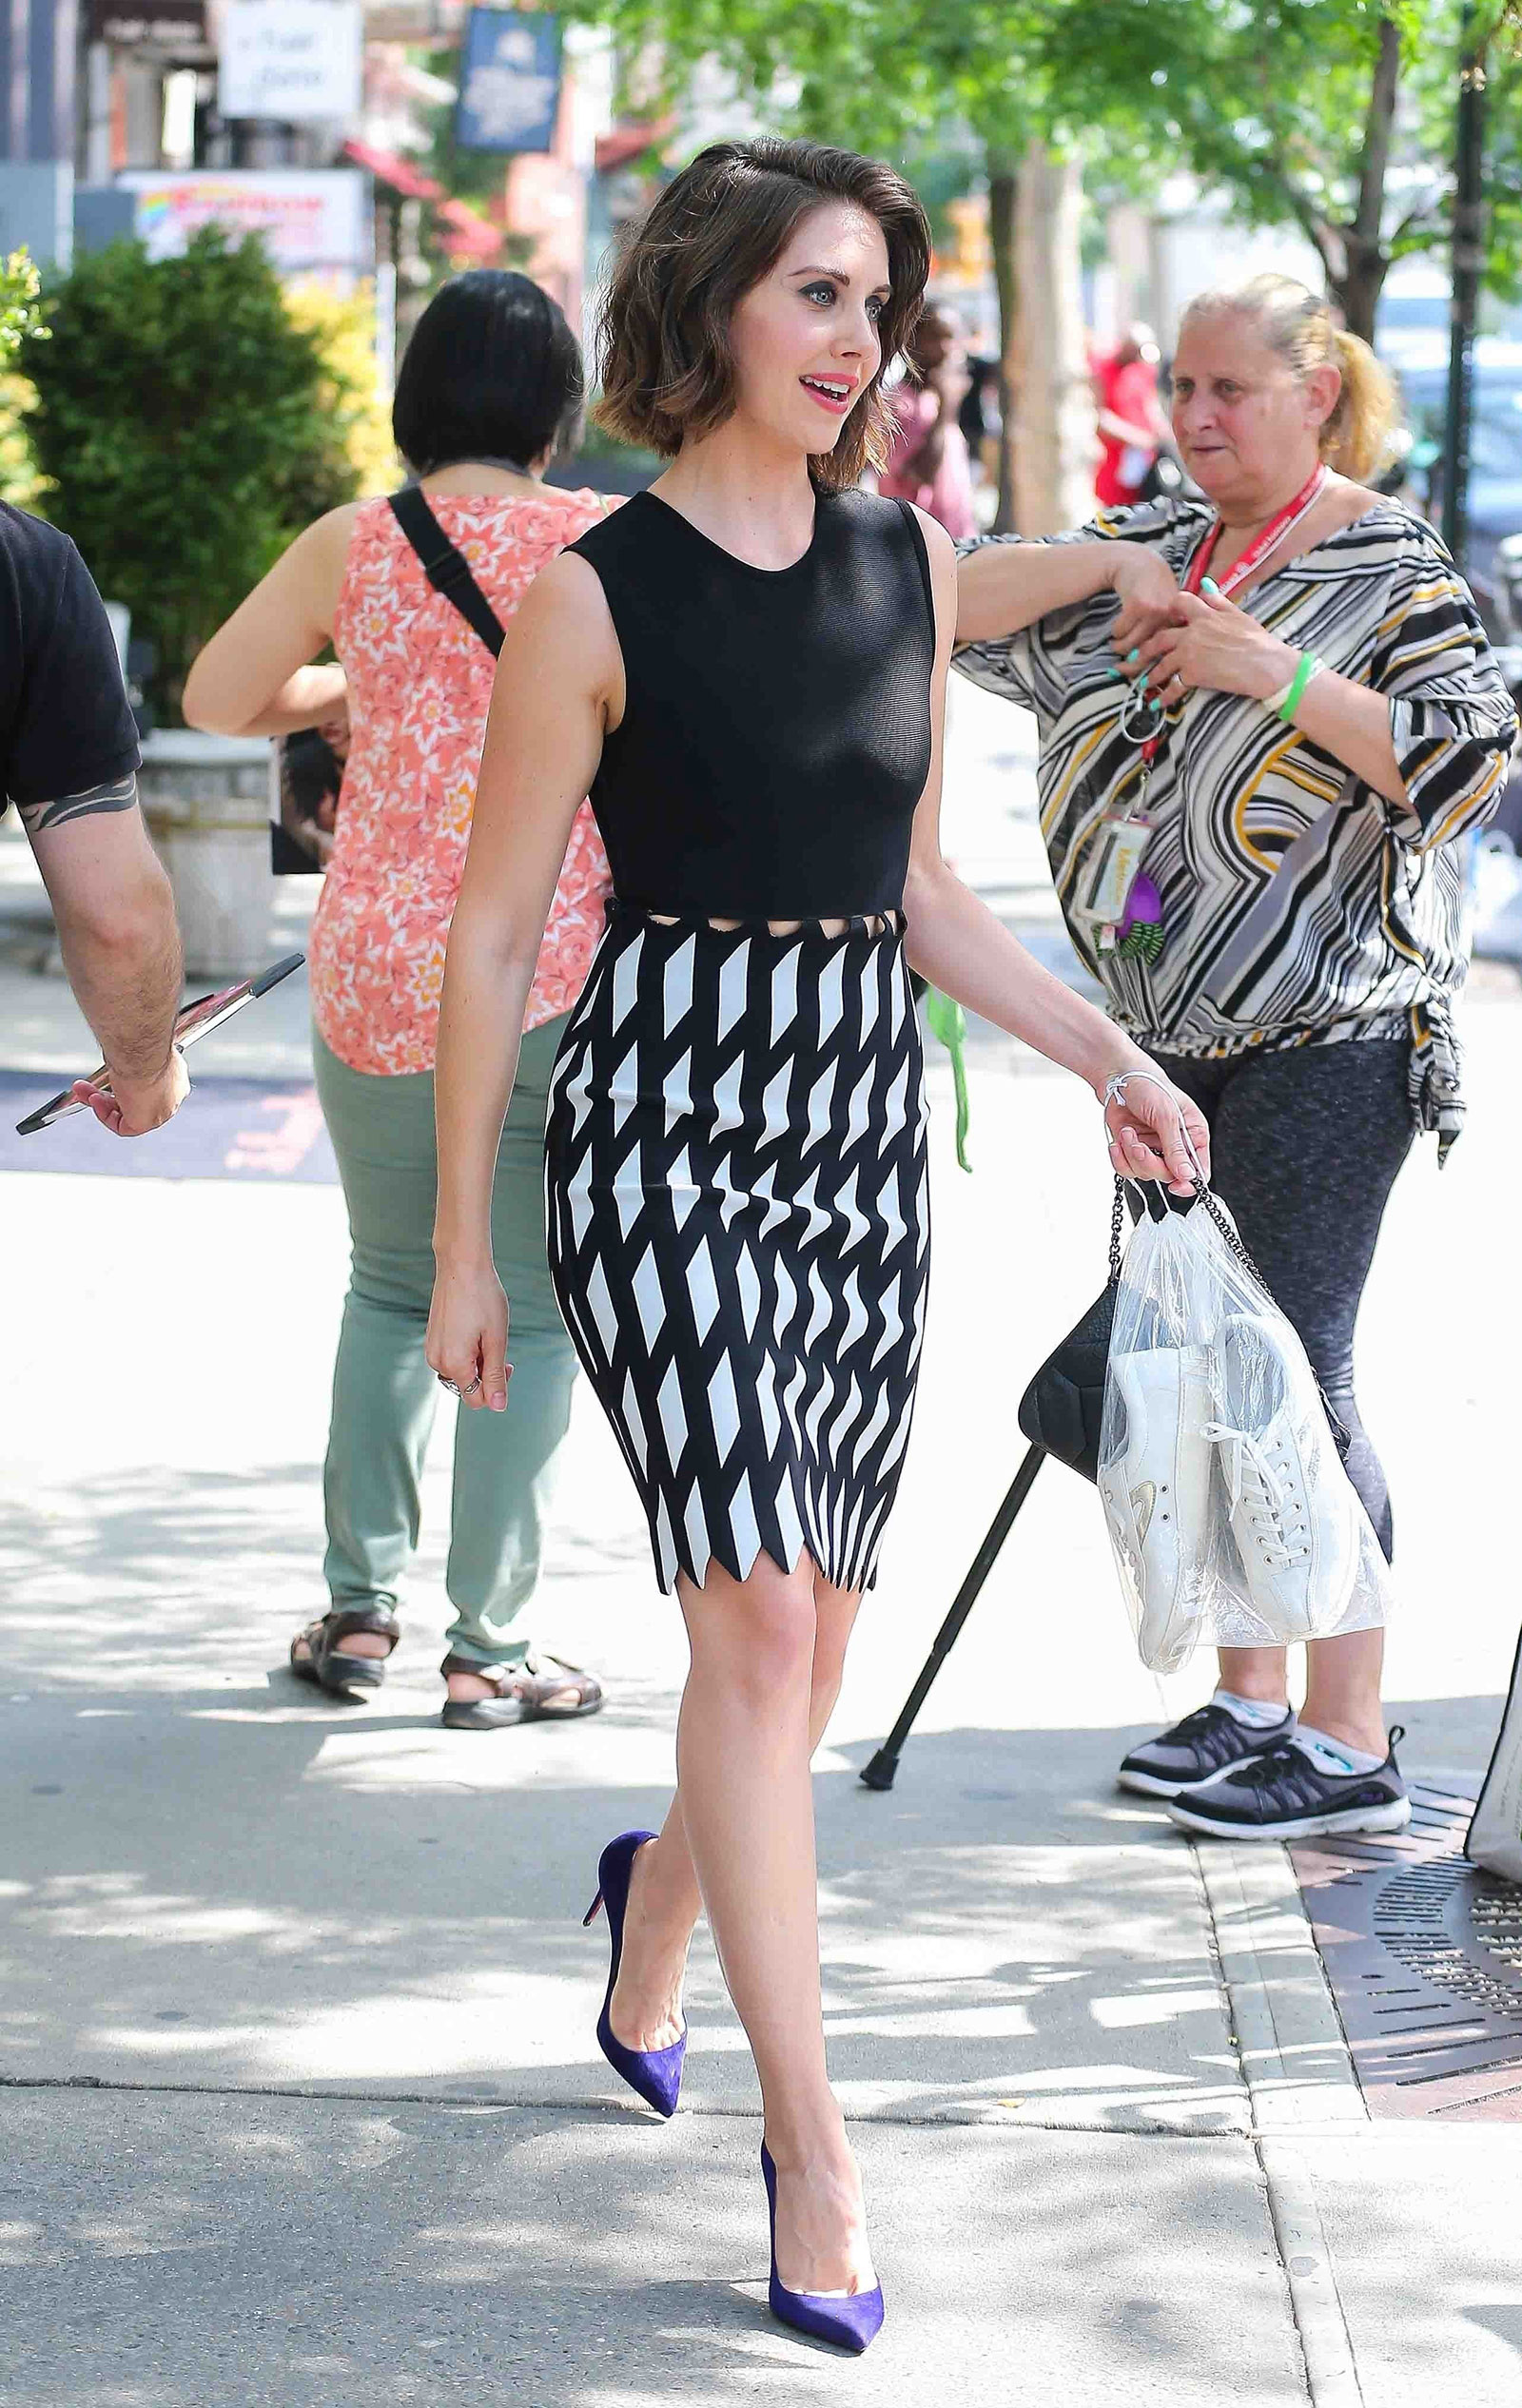 Alison Brie From Mad Men Looks Chic For Summer In A Black And White Print Pencil